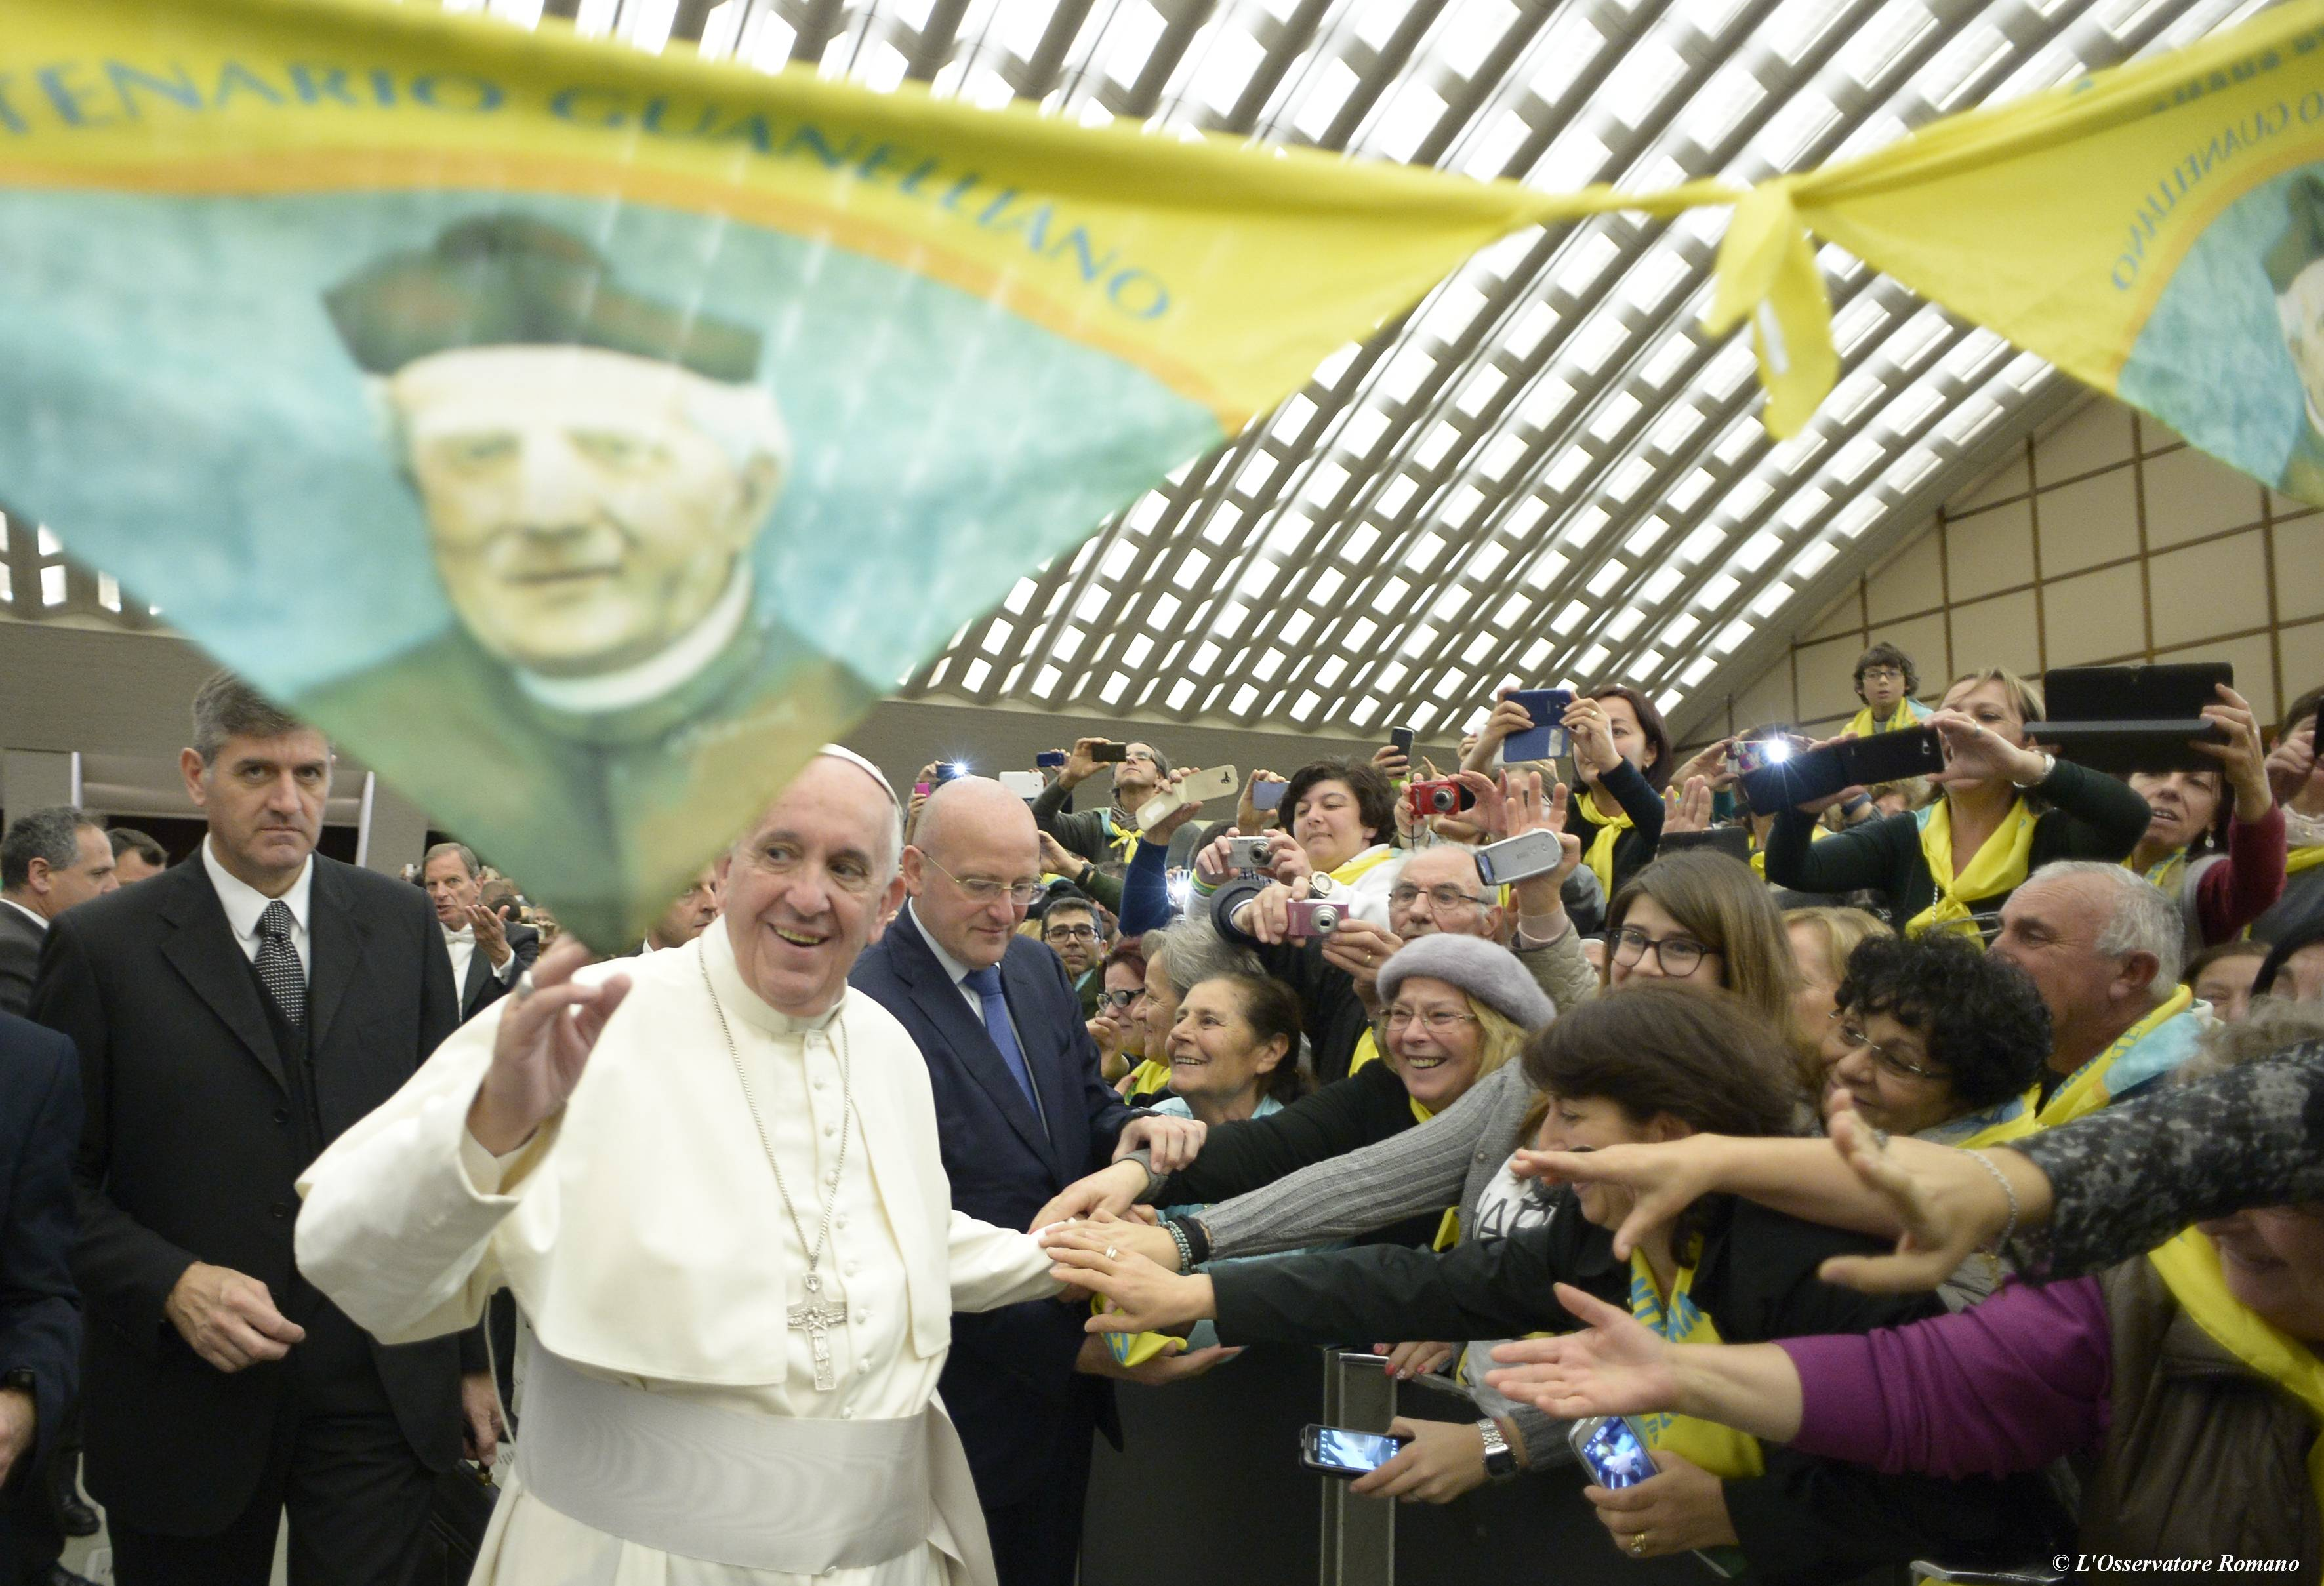 Pope Francis during the audience with members of the Don Guanella Charity foundation in the Paul VI hall